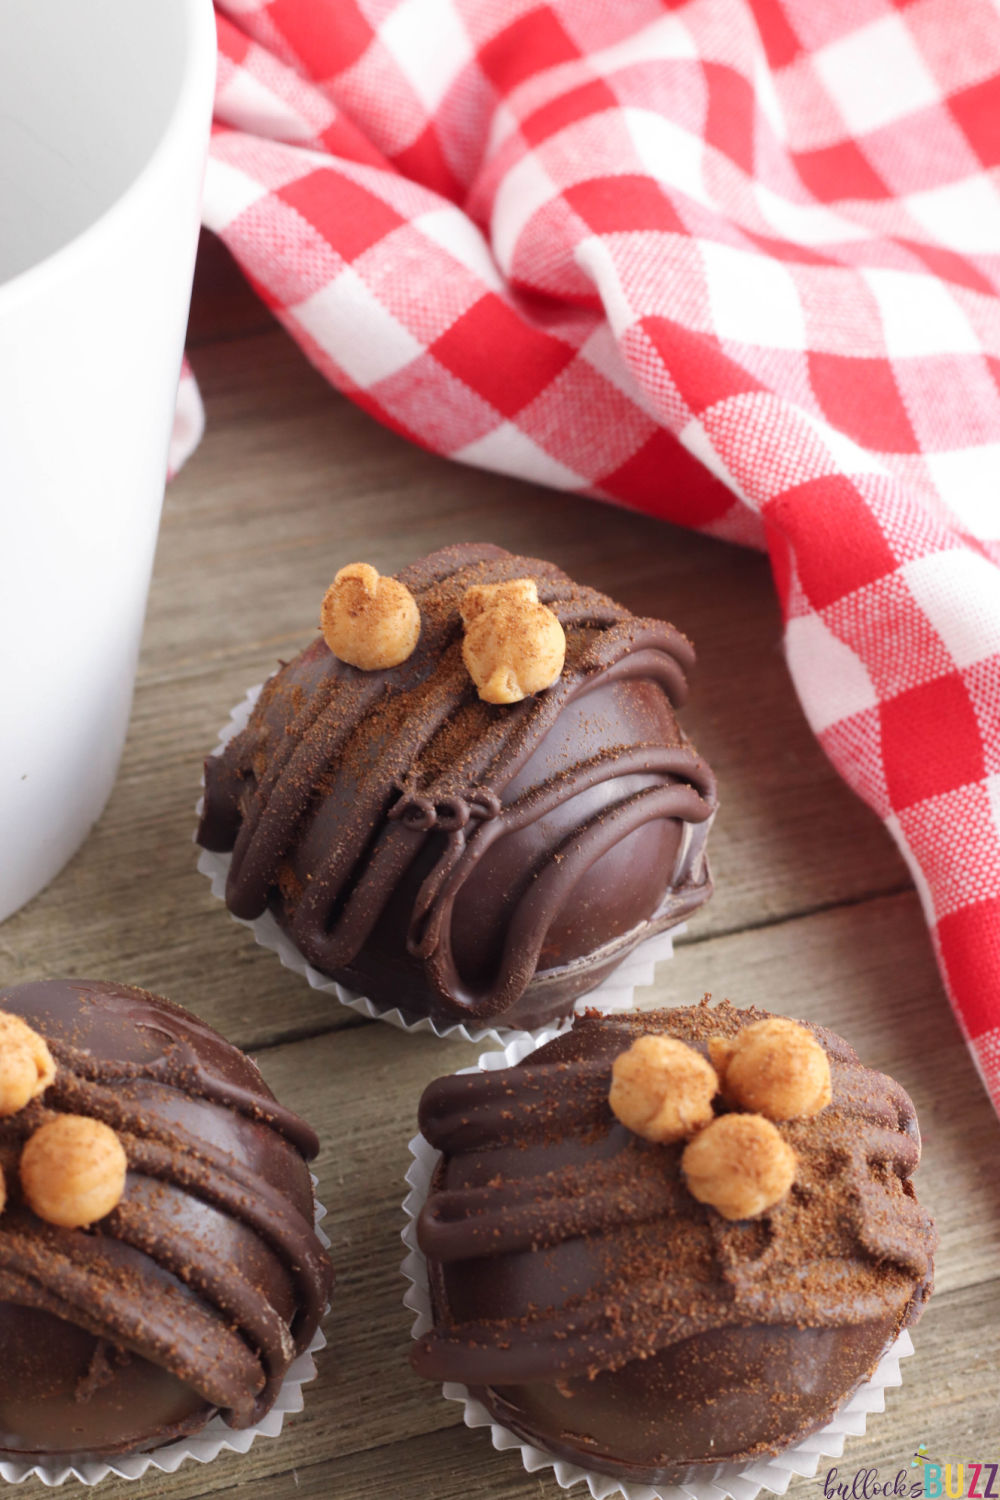 These Caramel Mocha Coffee Bombs are extra special because not only do are they rich and delicious tasting, they look amazing too! #coffeebomb #espressobomb #recipes #caramelmocha #coffee